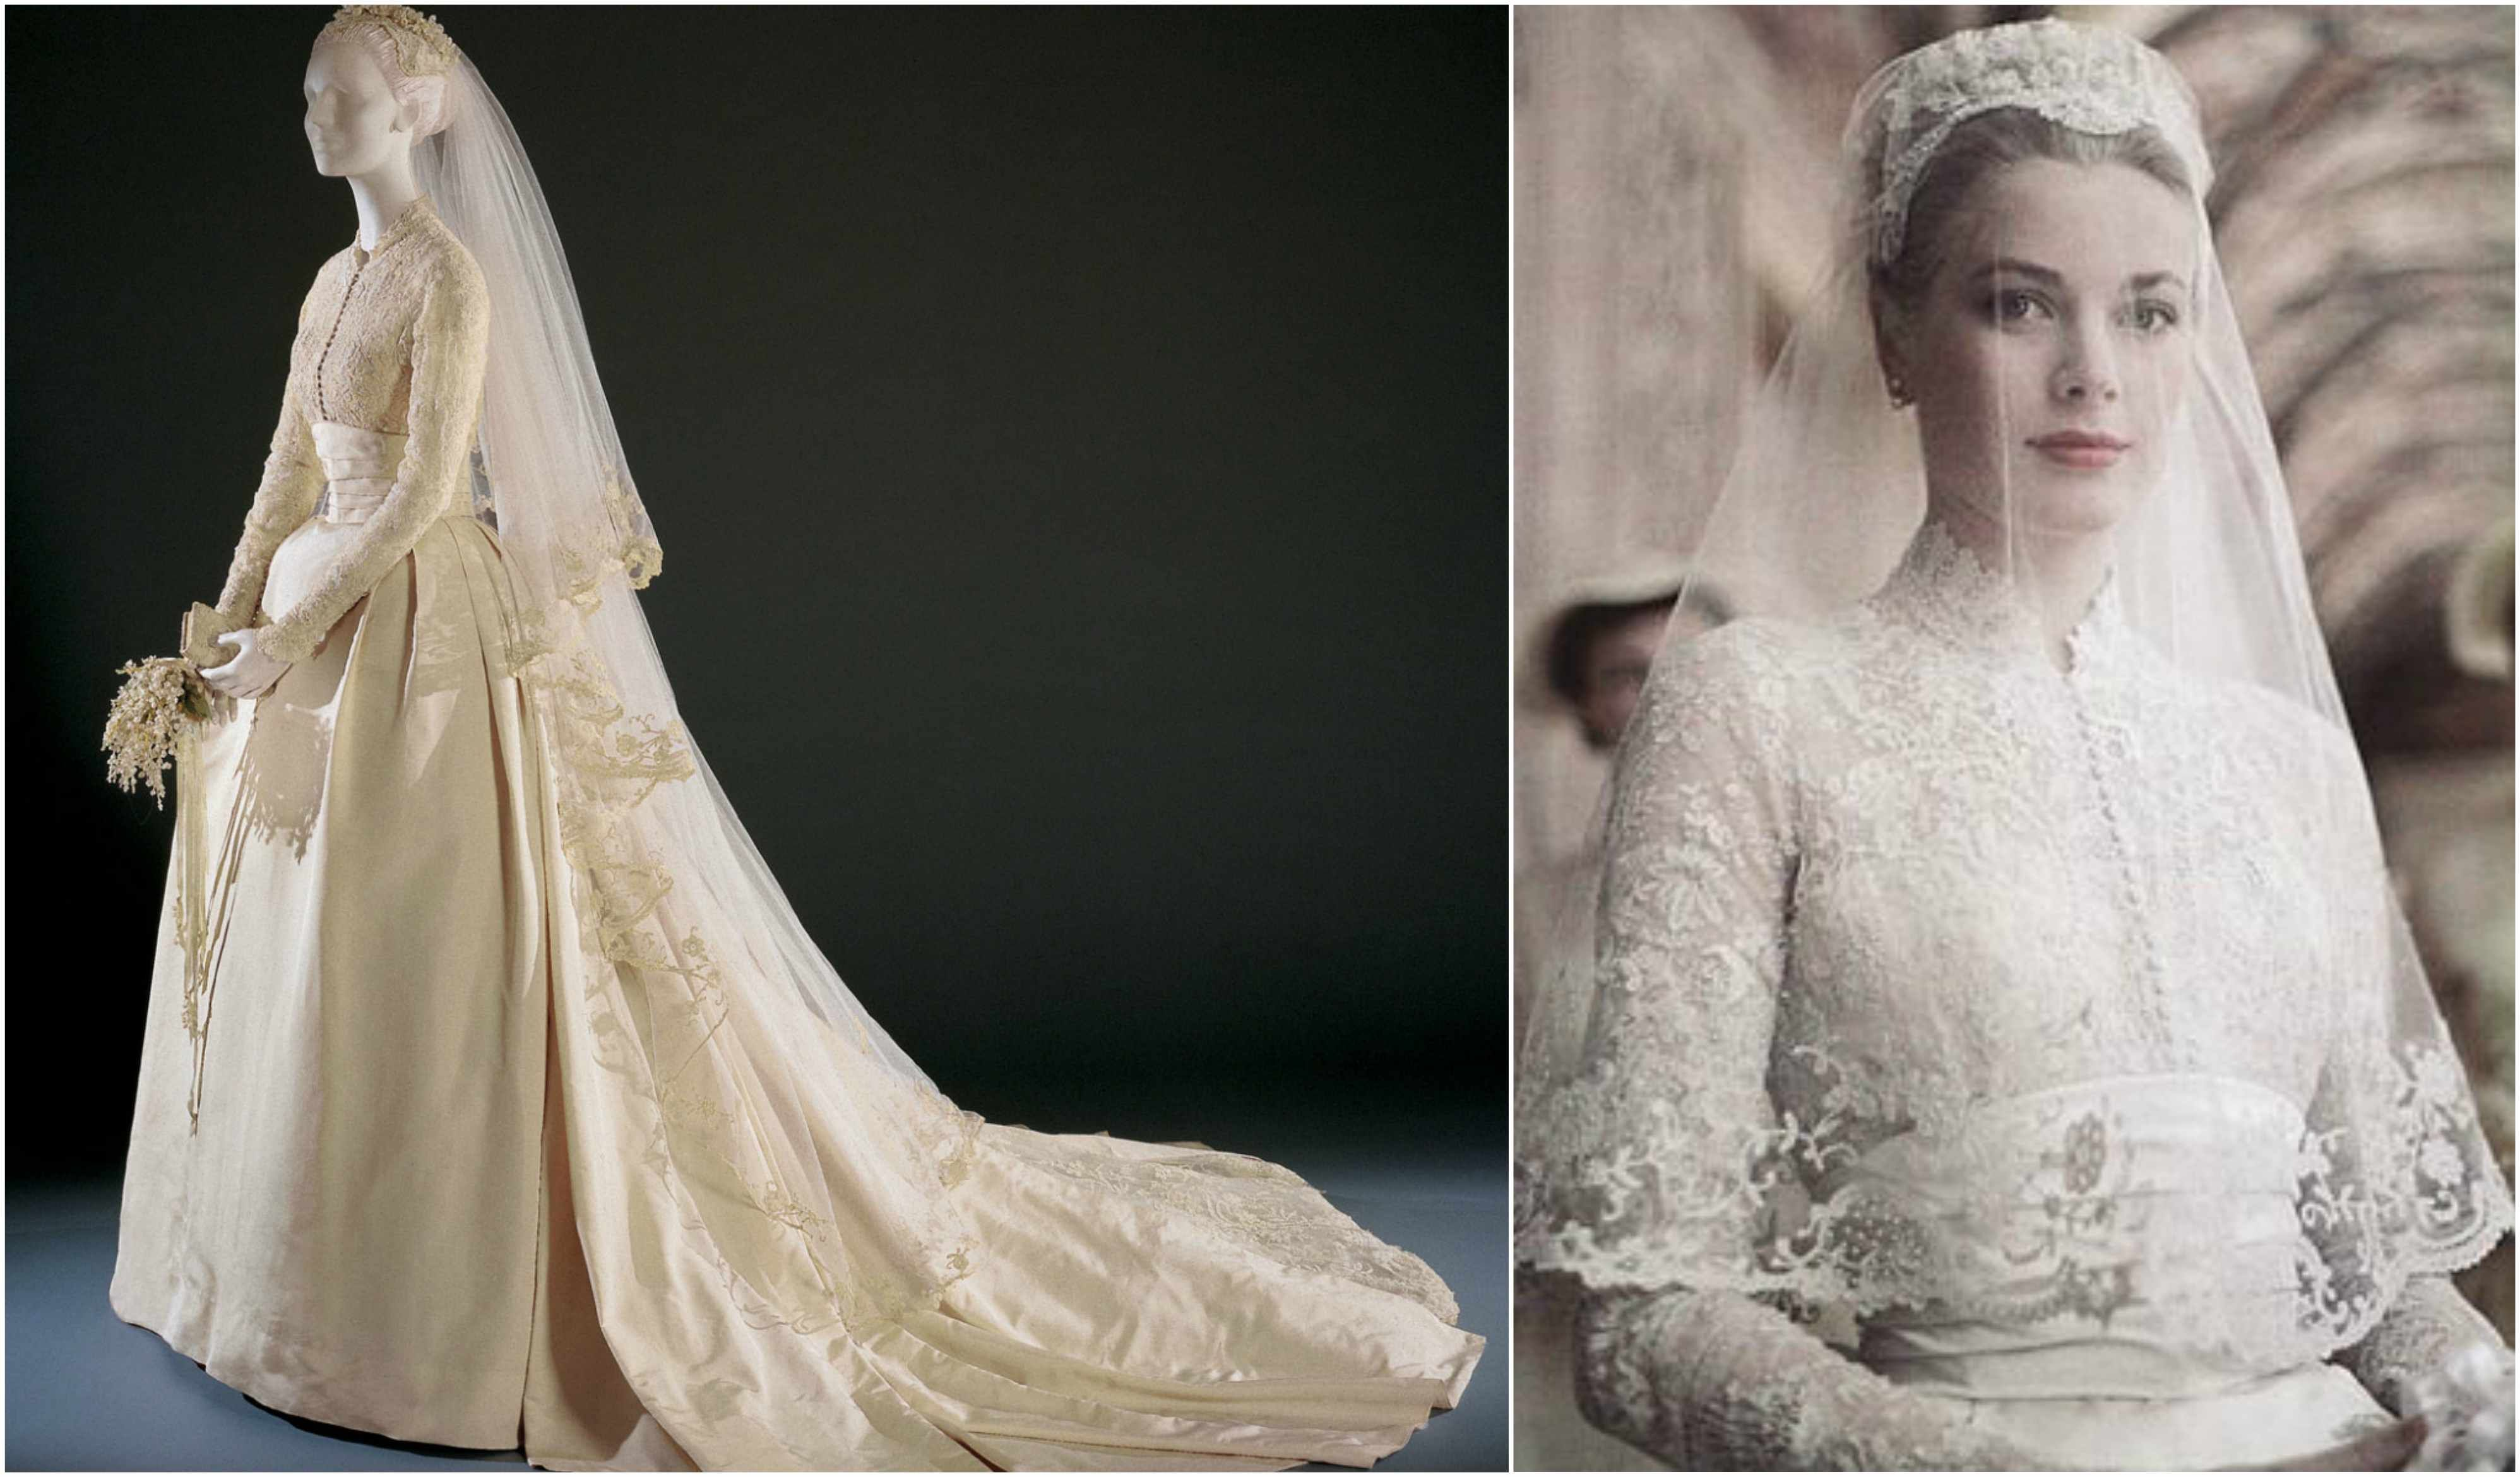 The princess bride-Grace Kelly\'s wedding dress is cited as a ...